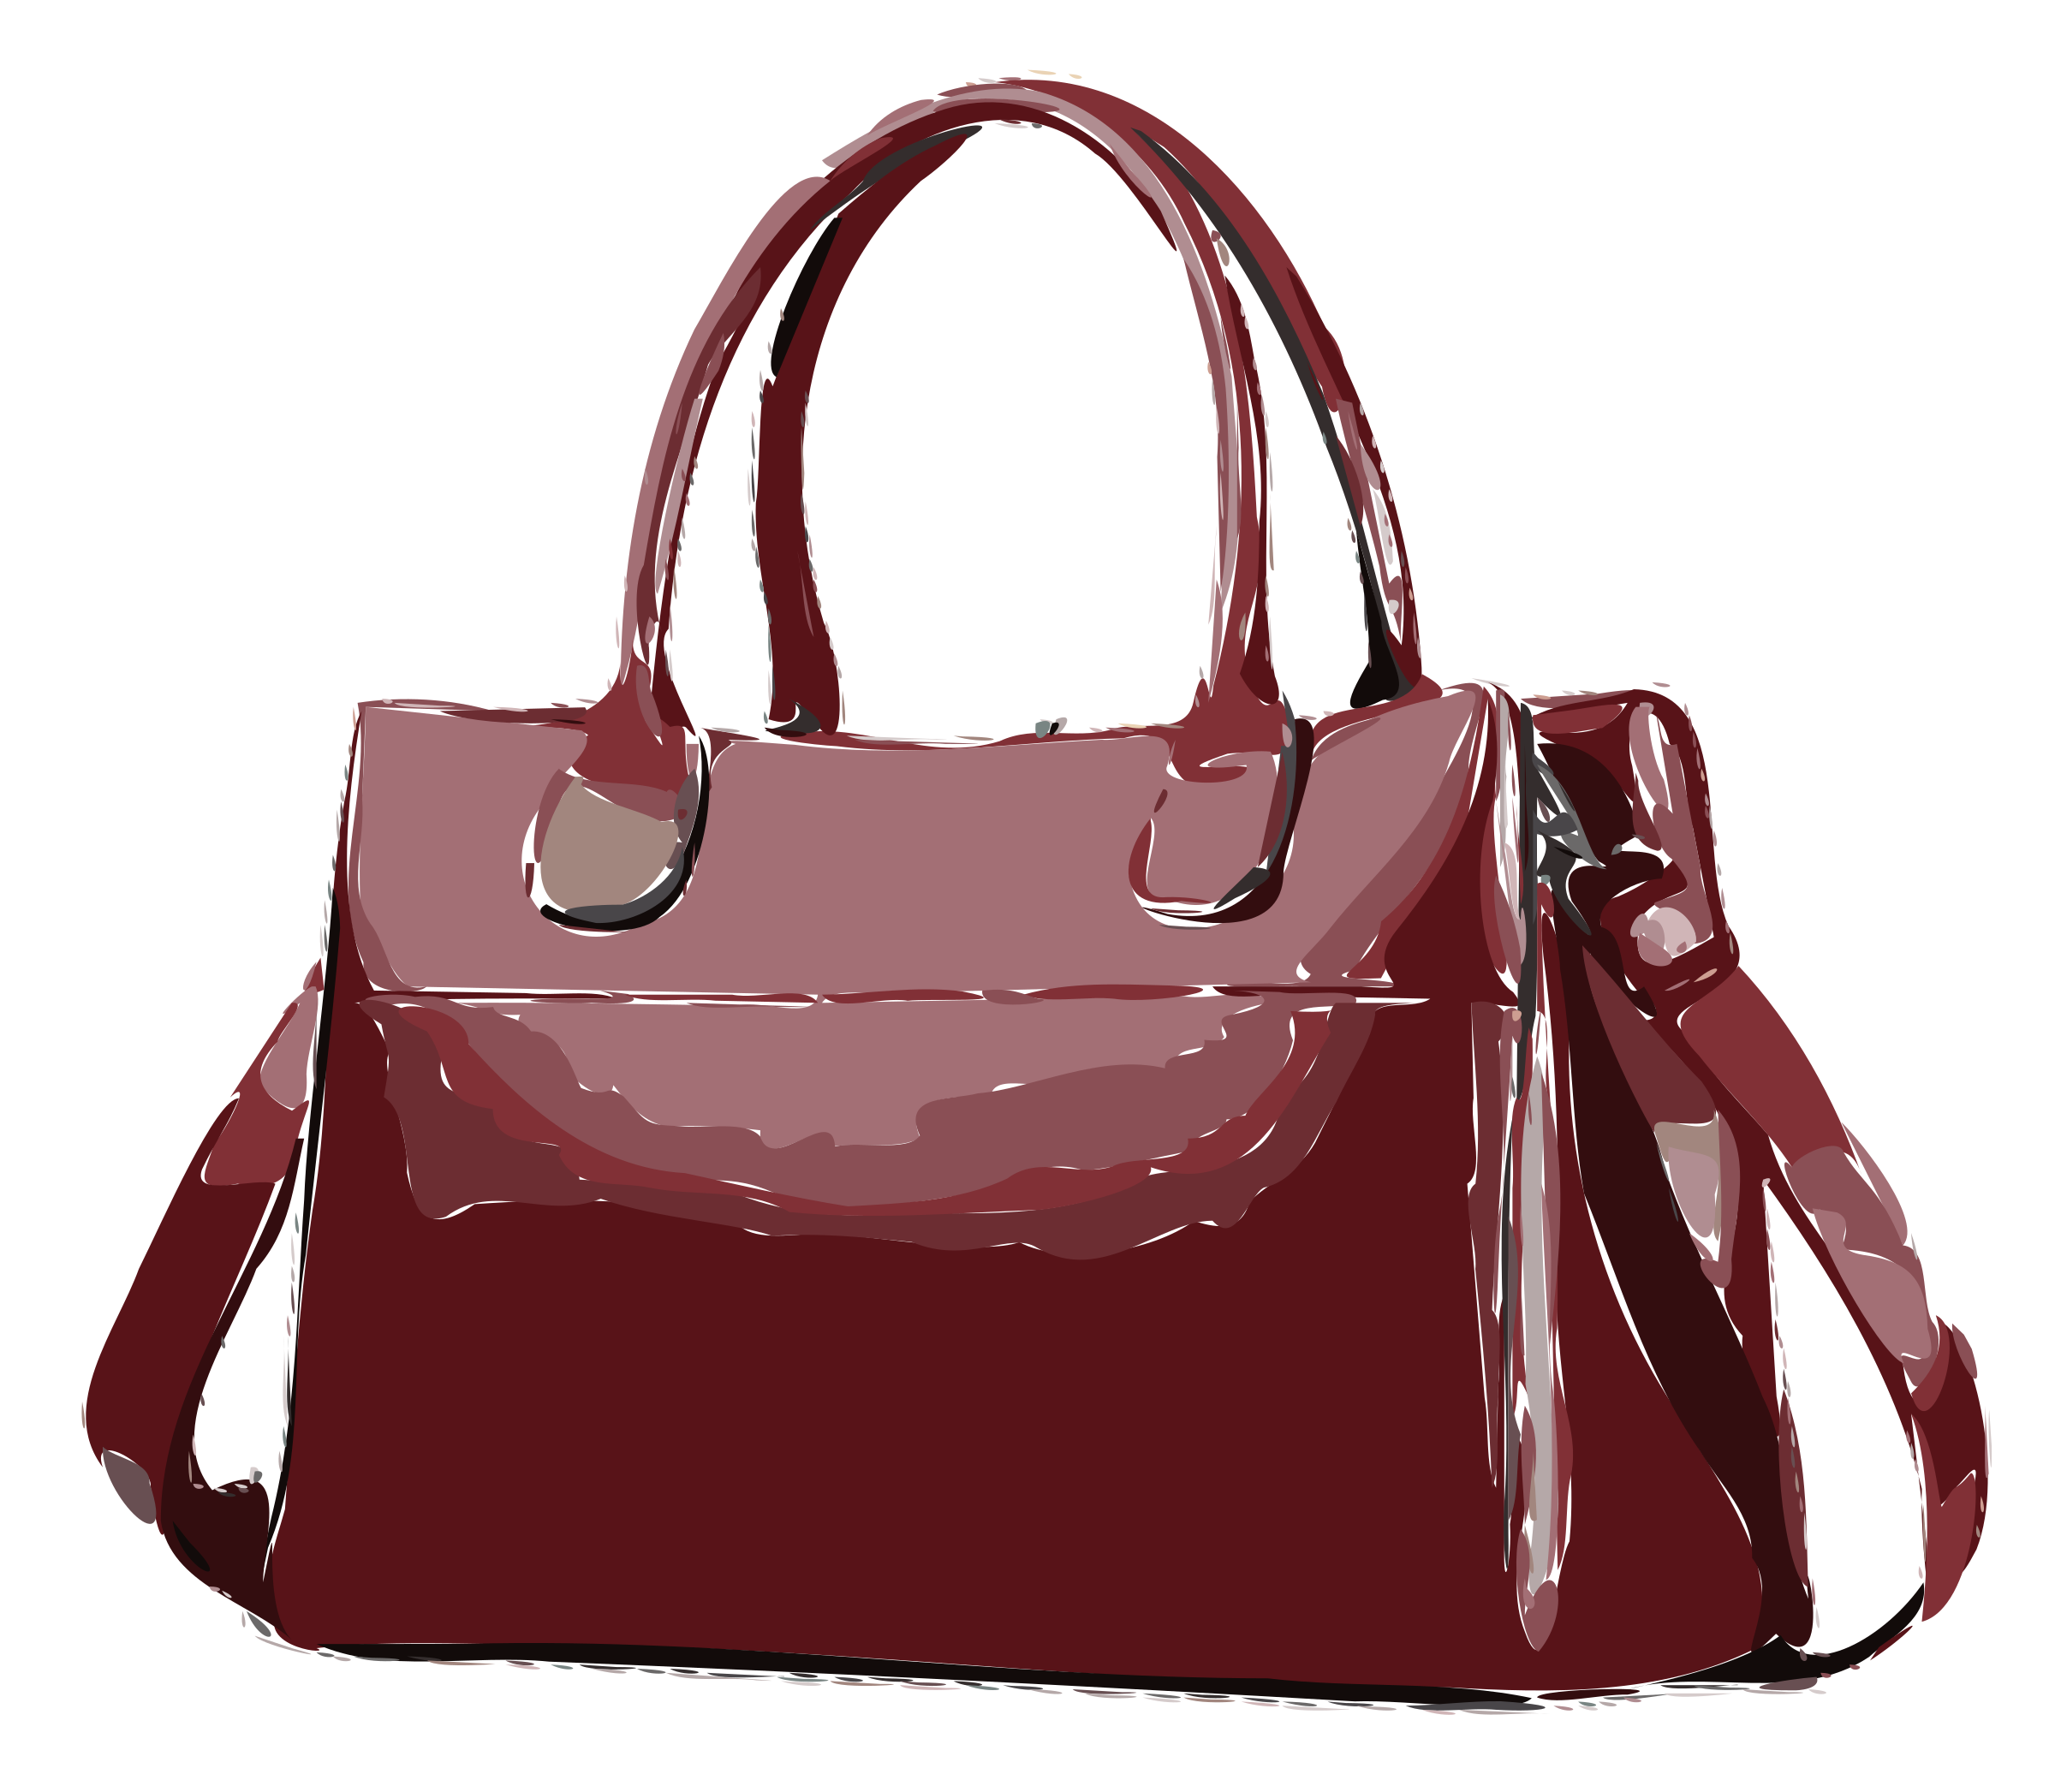 Red purse png. Images transparent free download